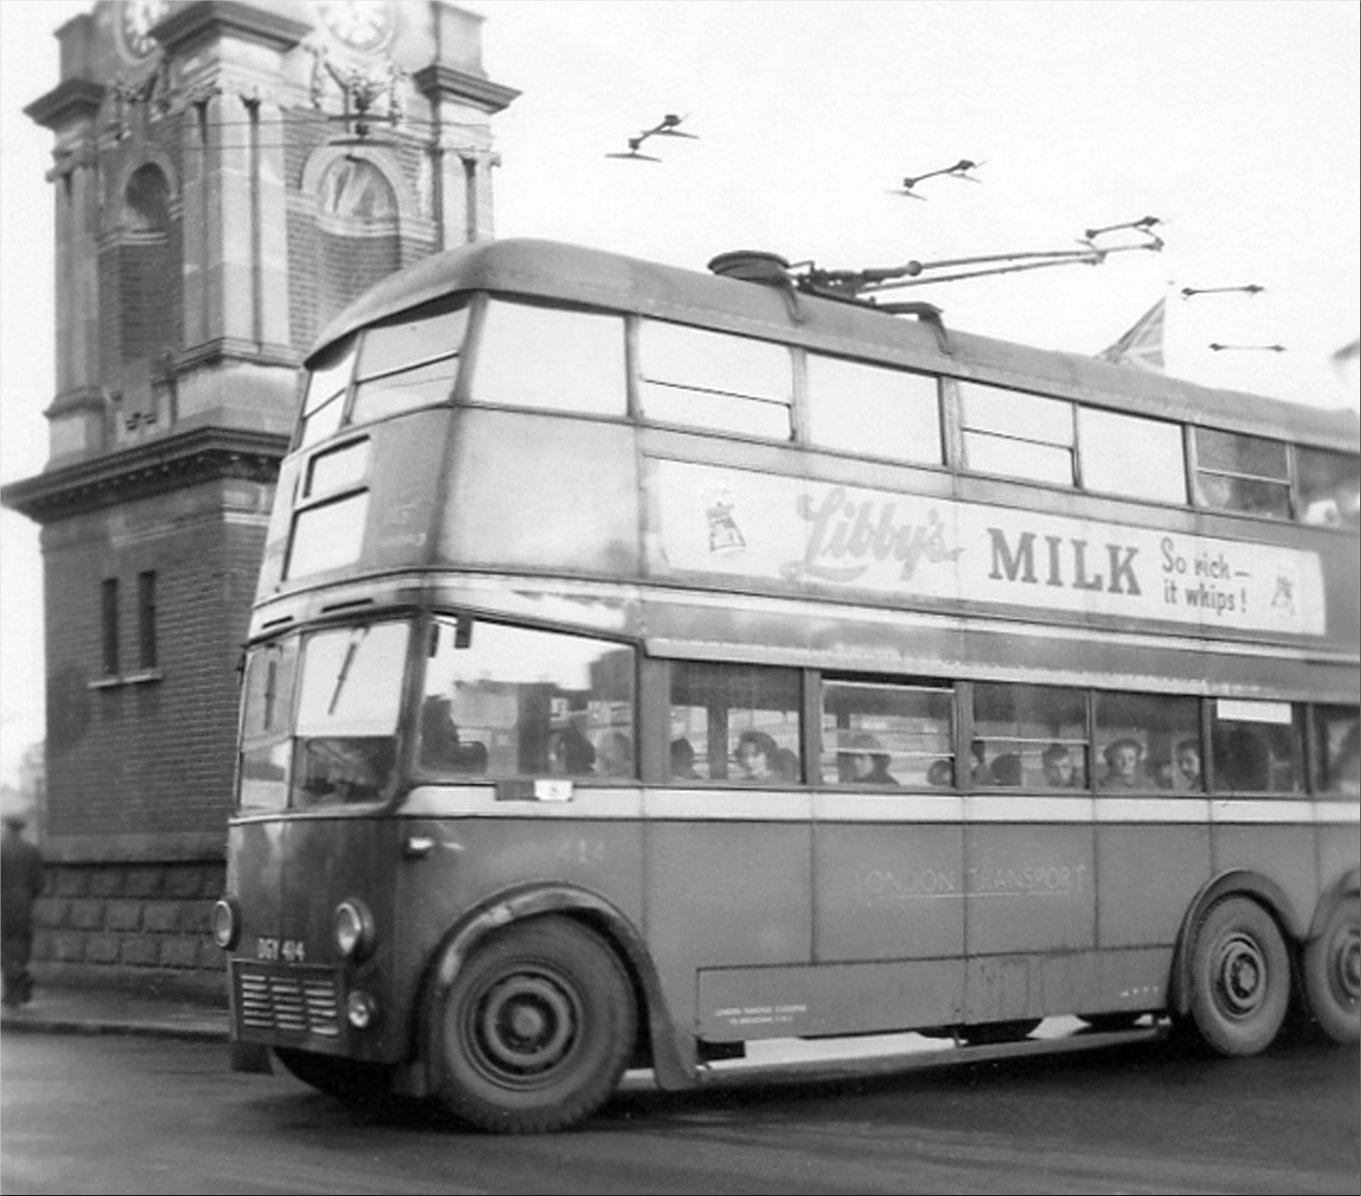 Bexleyheath town centre on 3 March 1959